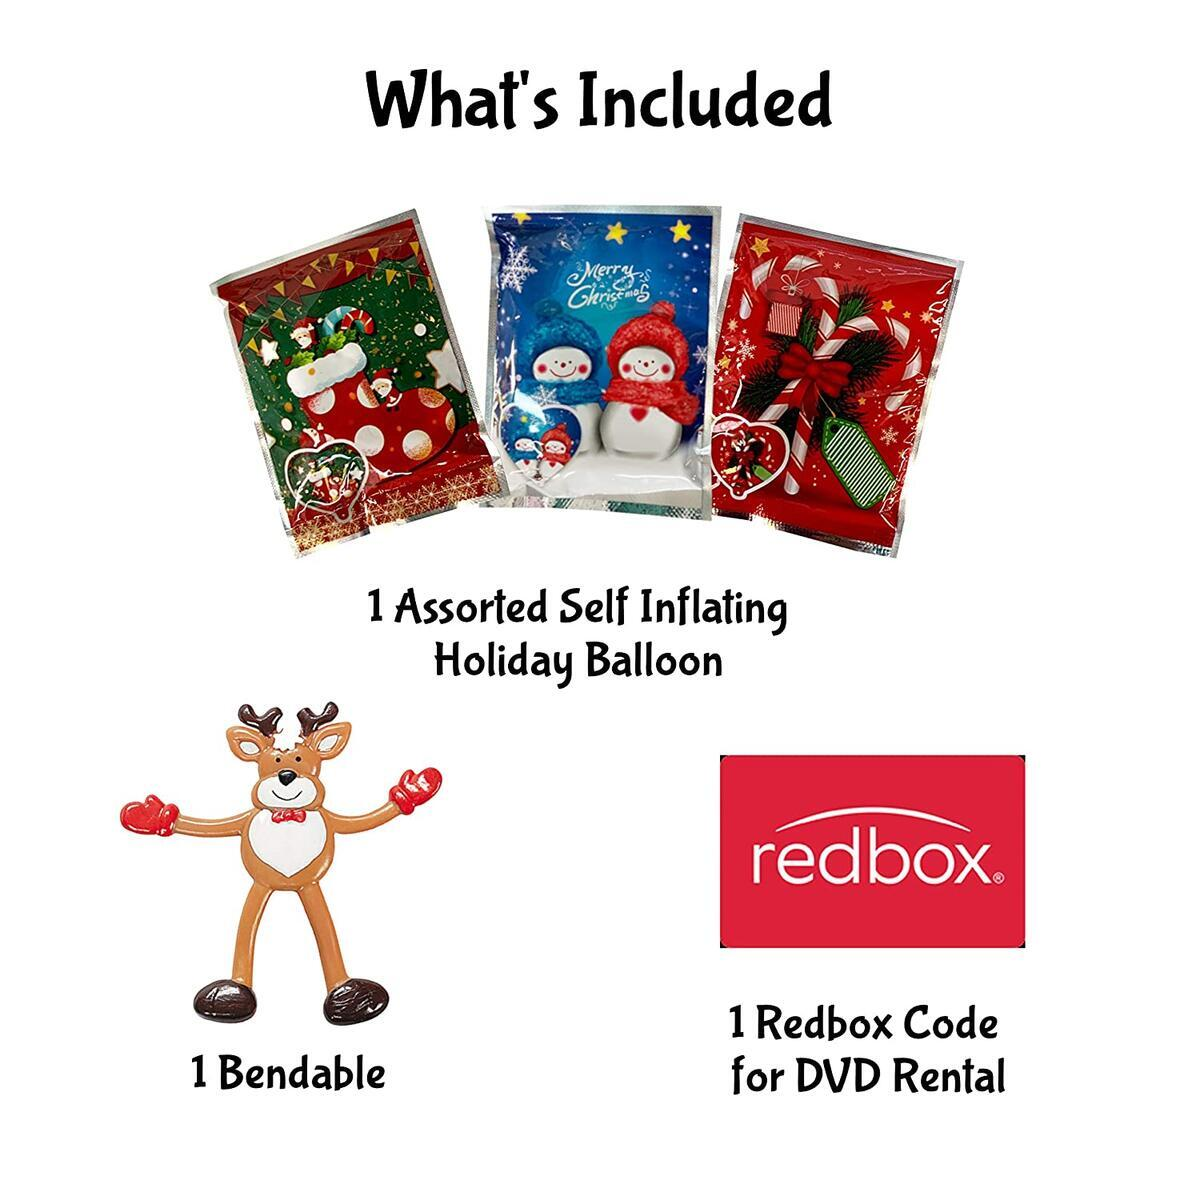 Christmas Redbox Movie Night Gift Baskets (Santa's Reindeer)